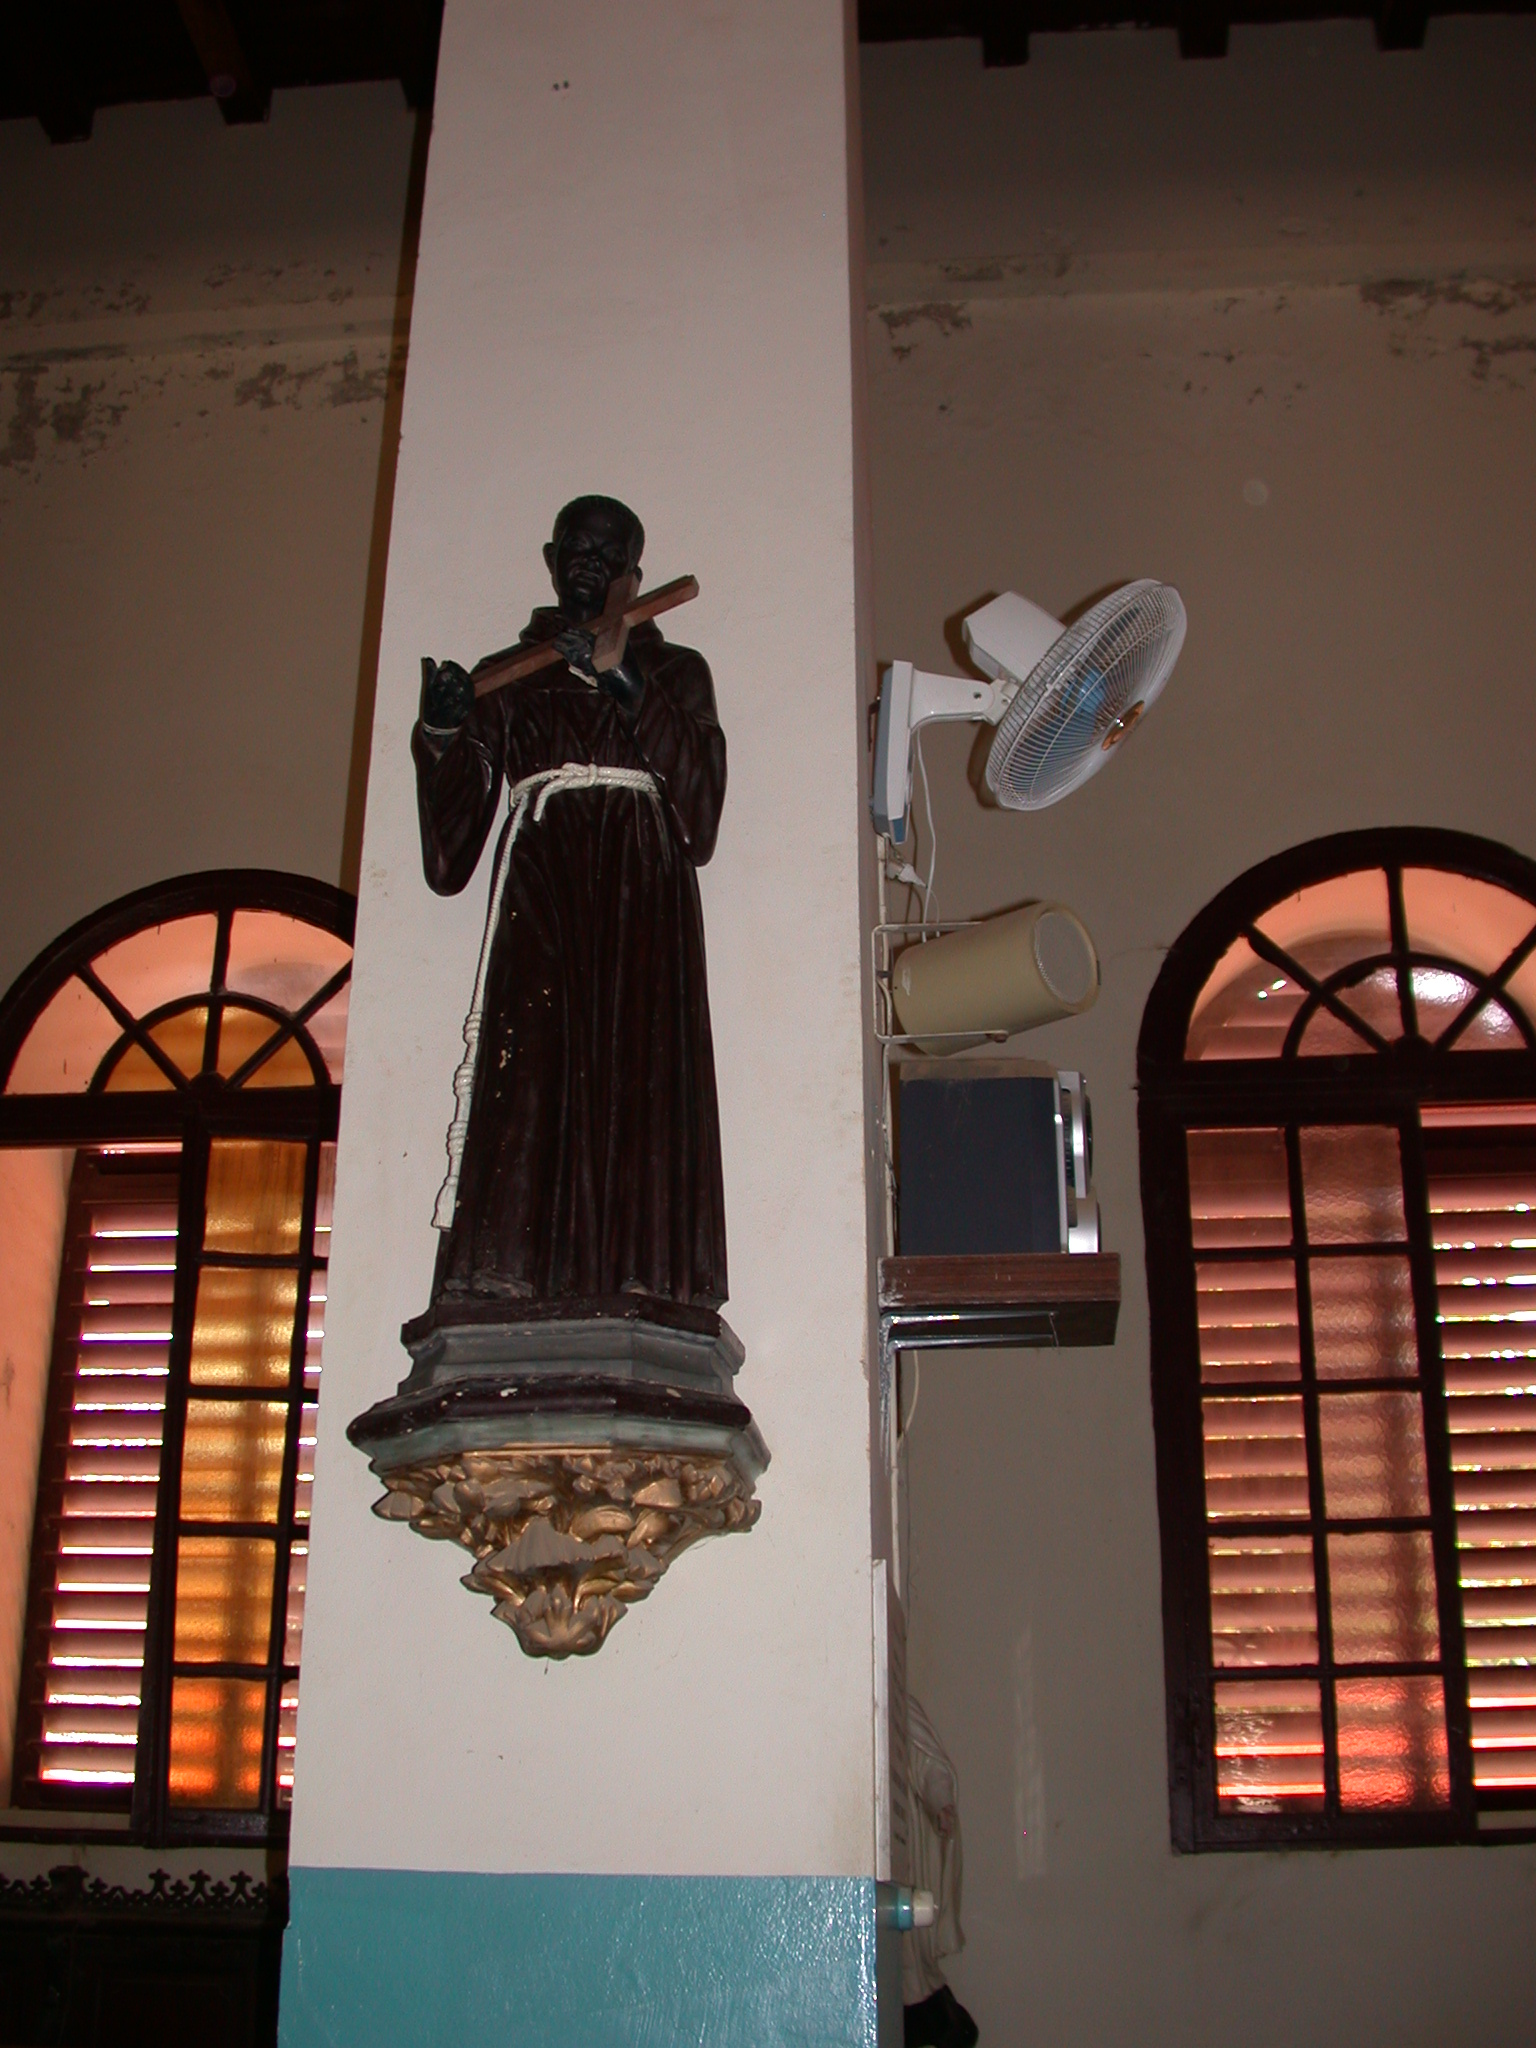 Second Black Figure in Cathedral, Ile de Goree, Dakar, Senegal